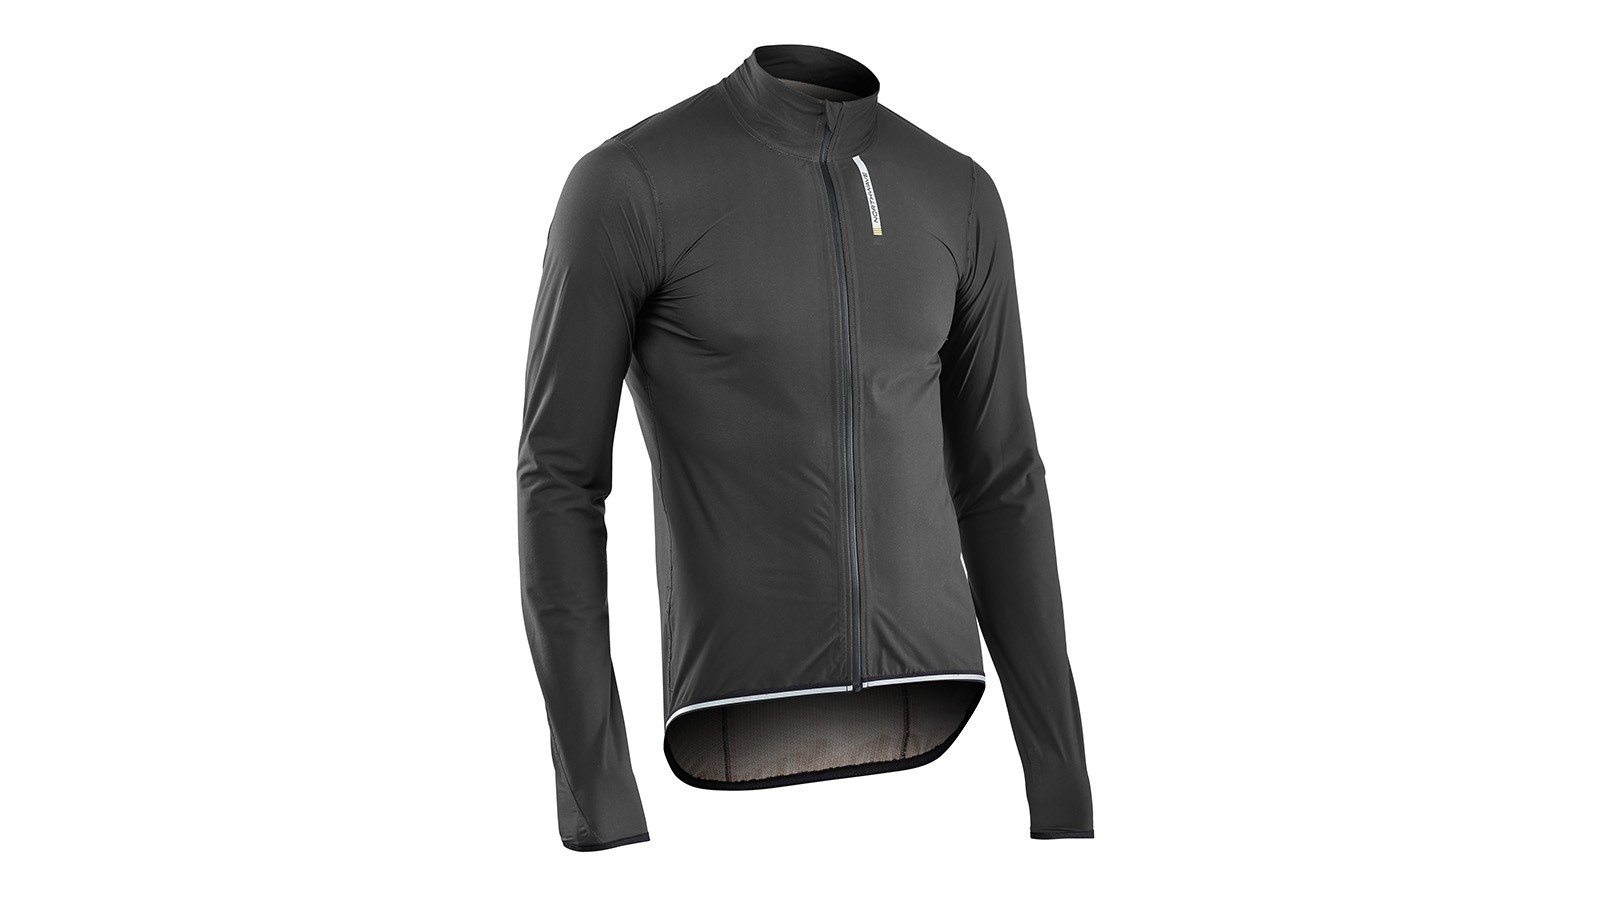 The Rainskin is made from four-way stretch fabric and sees a 10,000mm waterproof rating